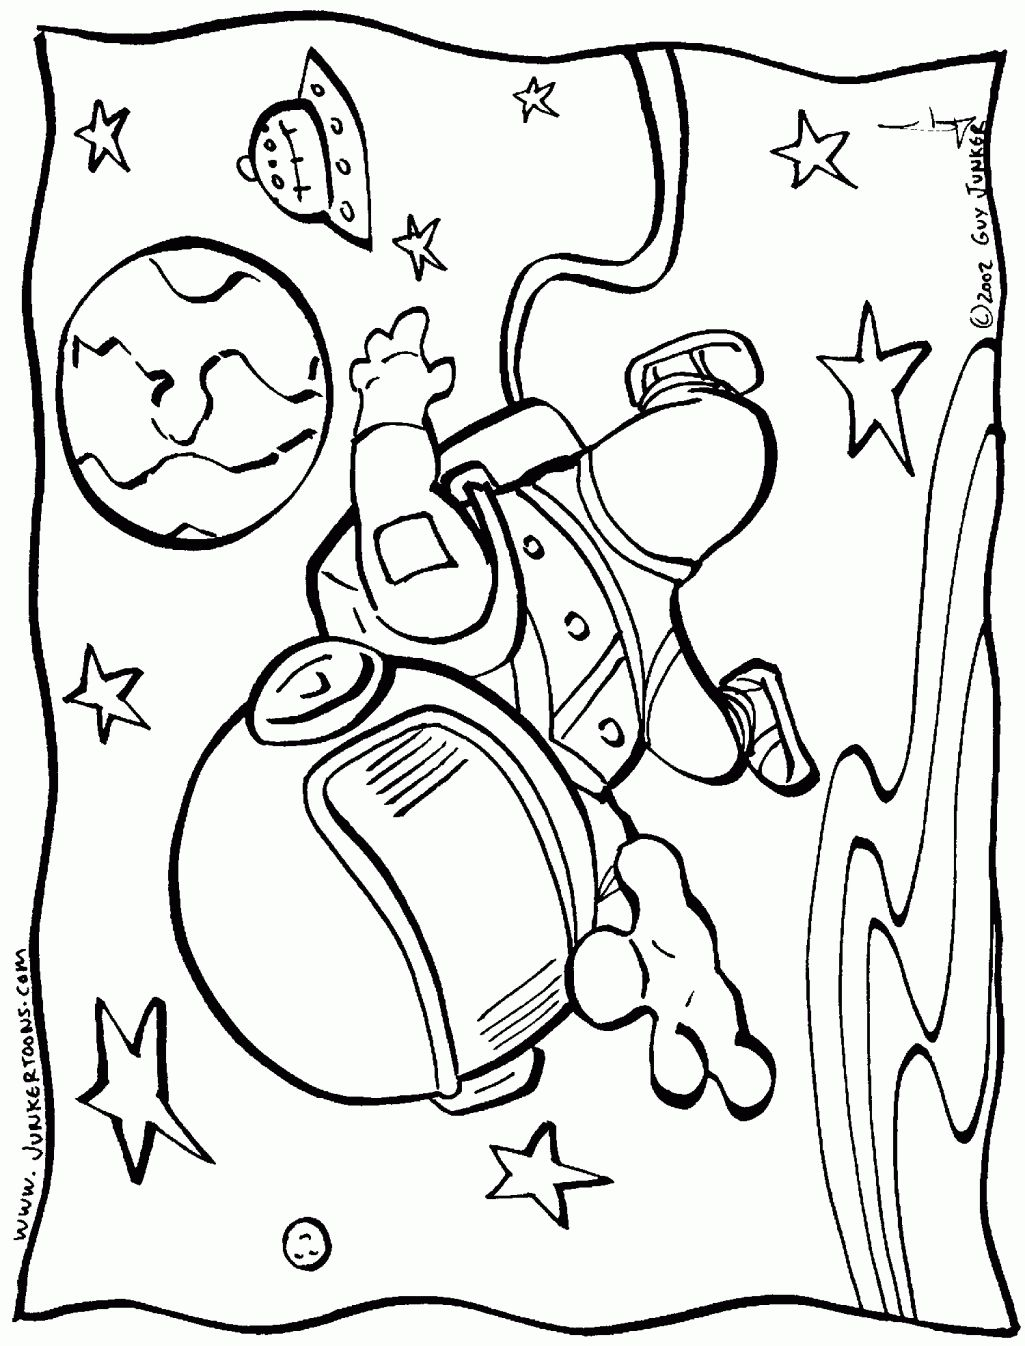 Chemistry Coloring Page A Free Science Coloring Printable Space ...